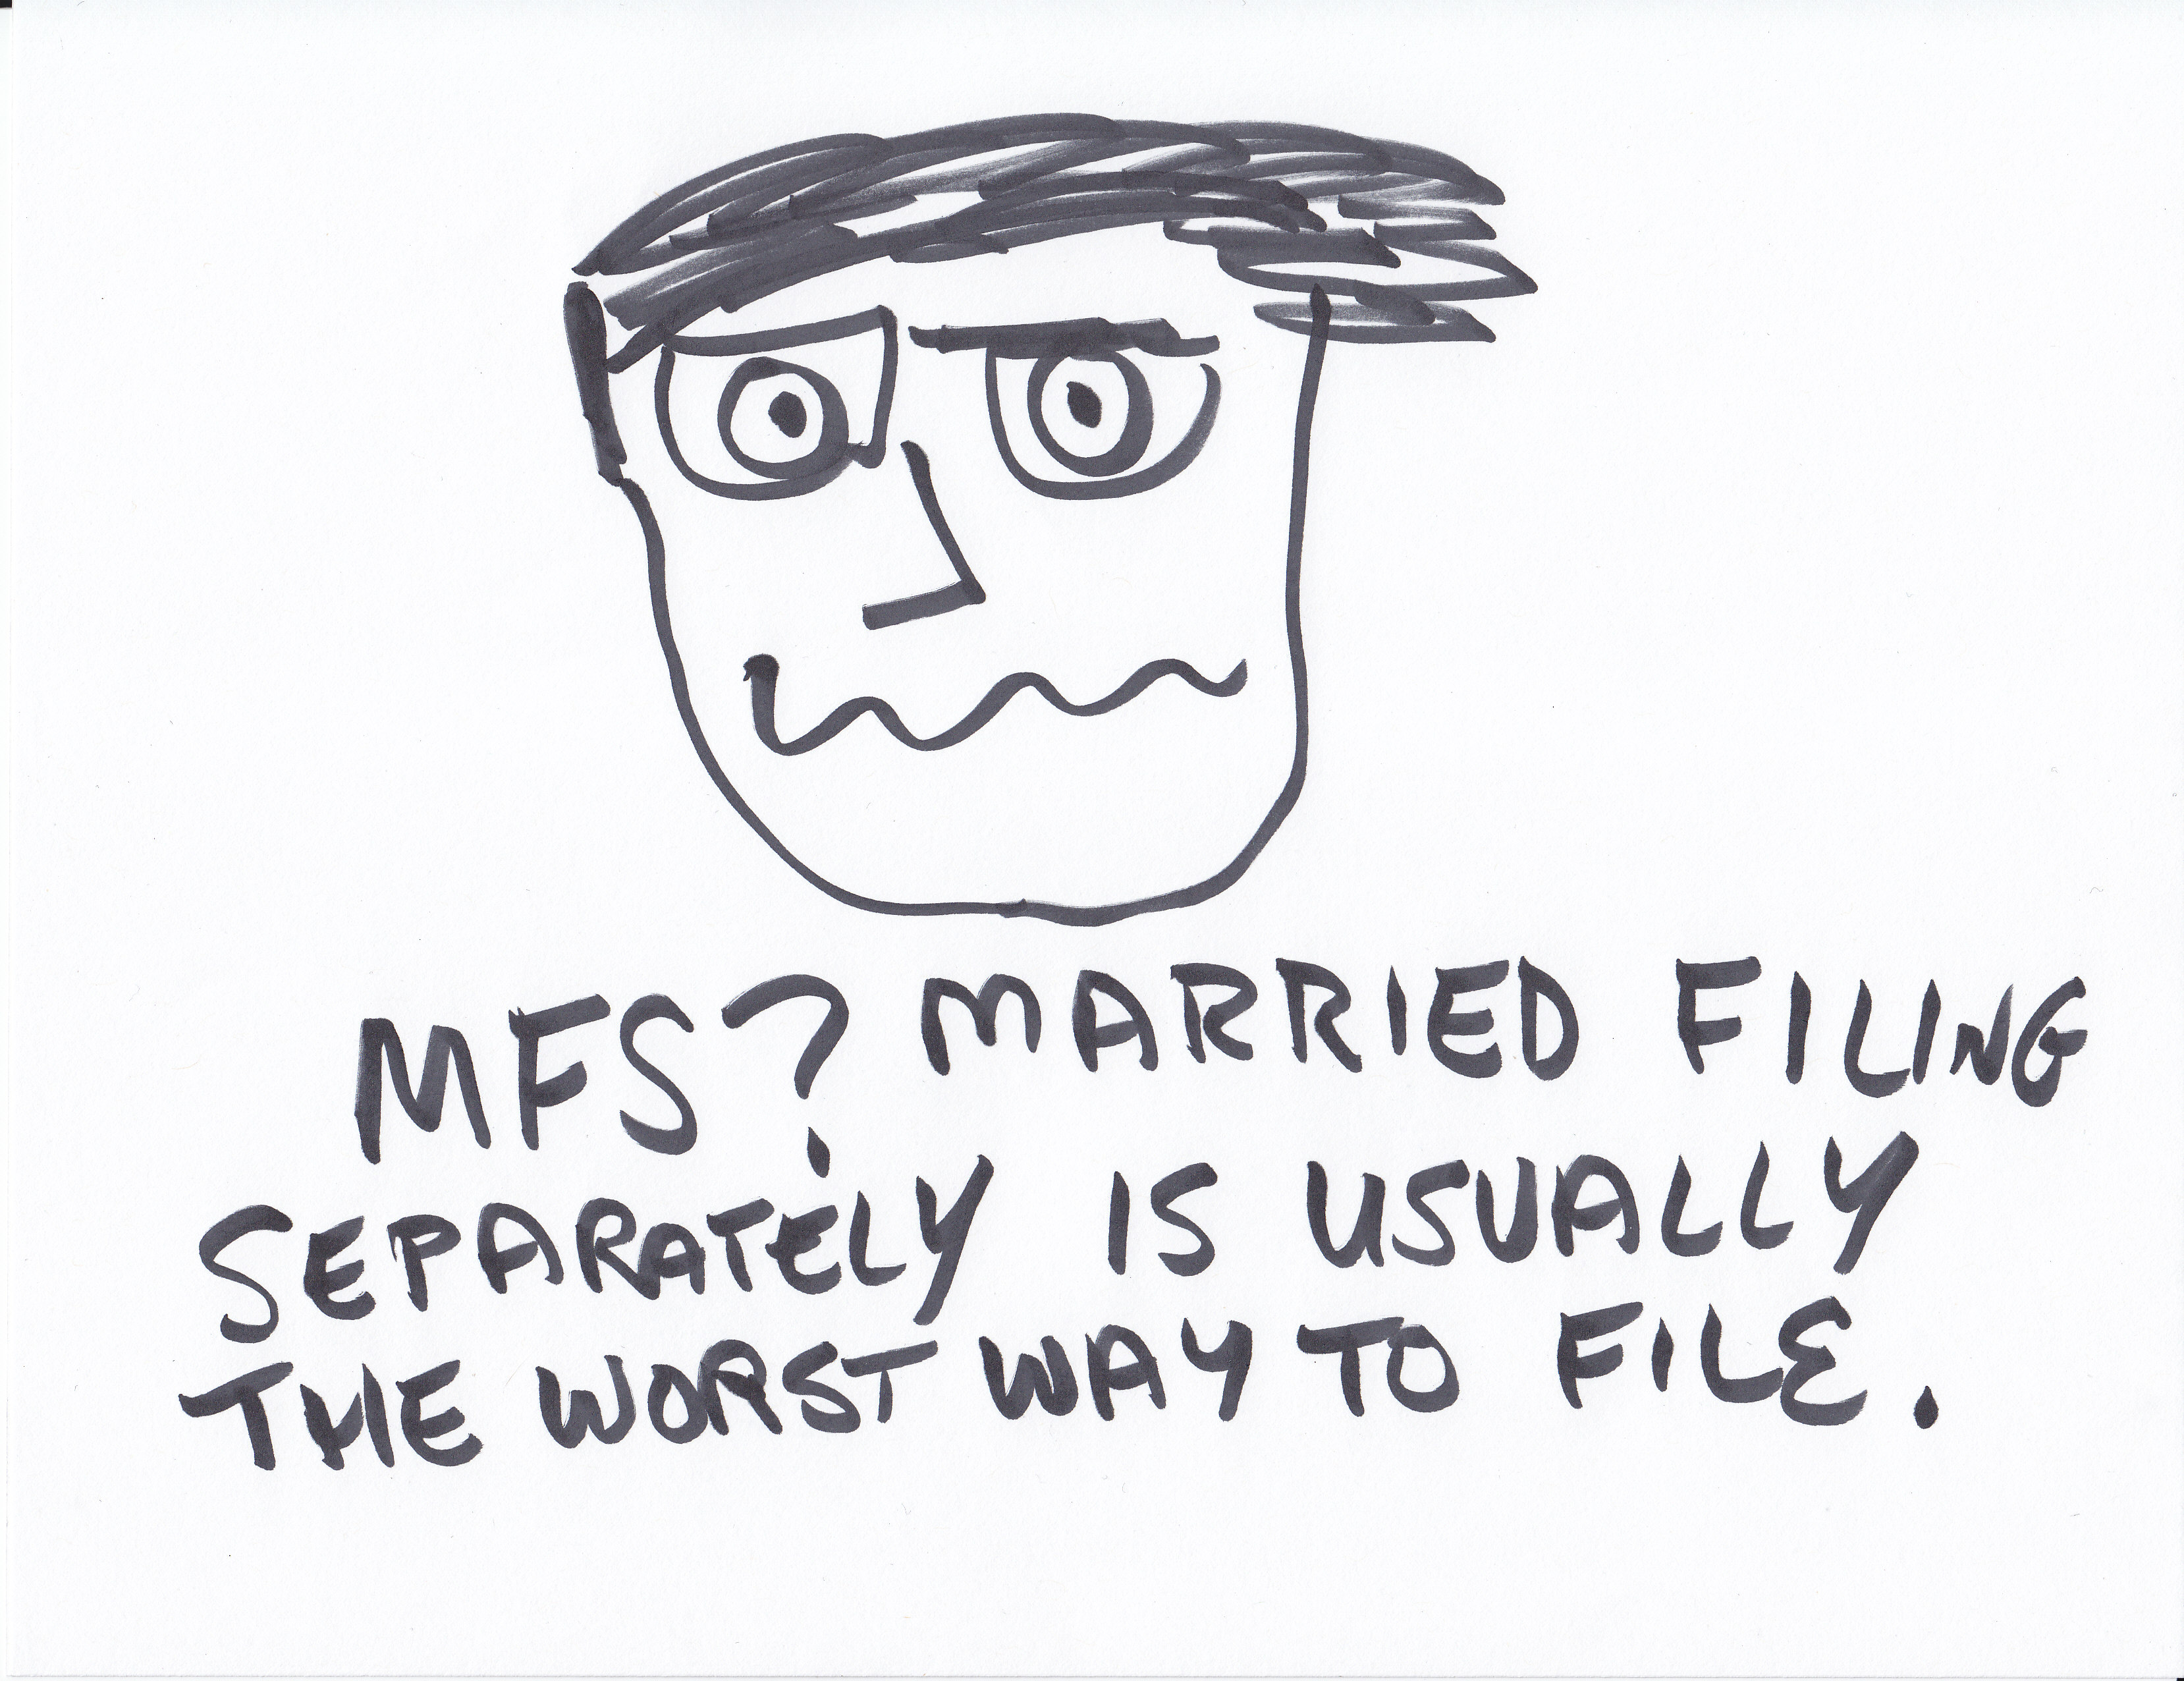 Married Filing Separately Question